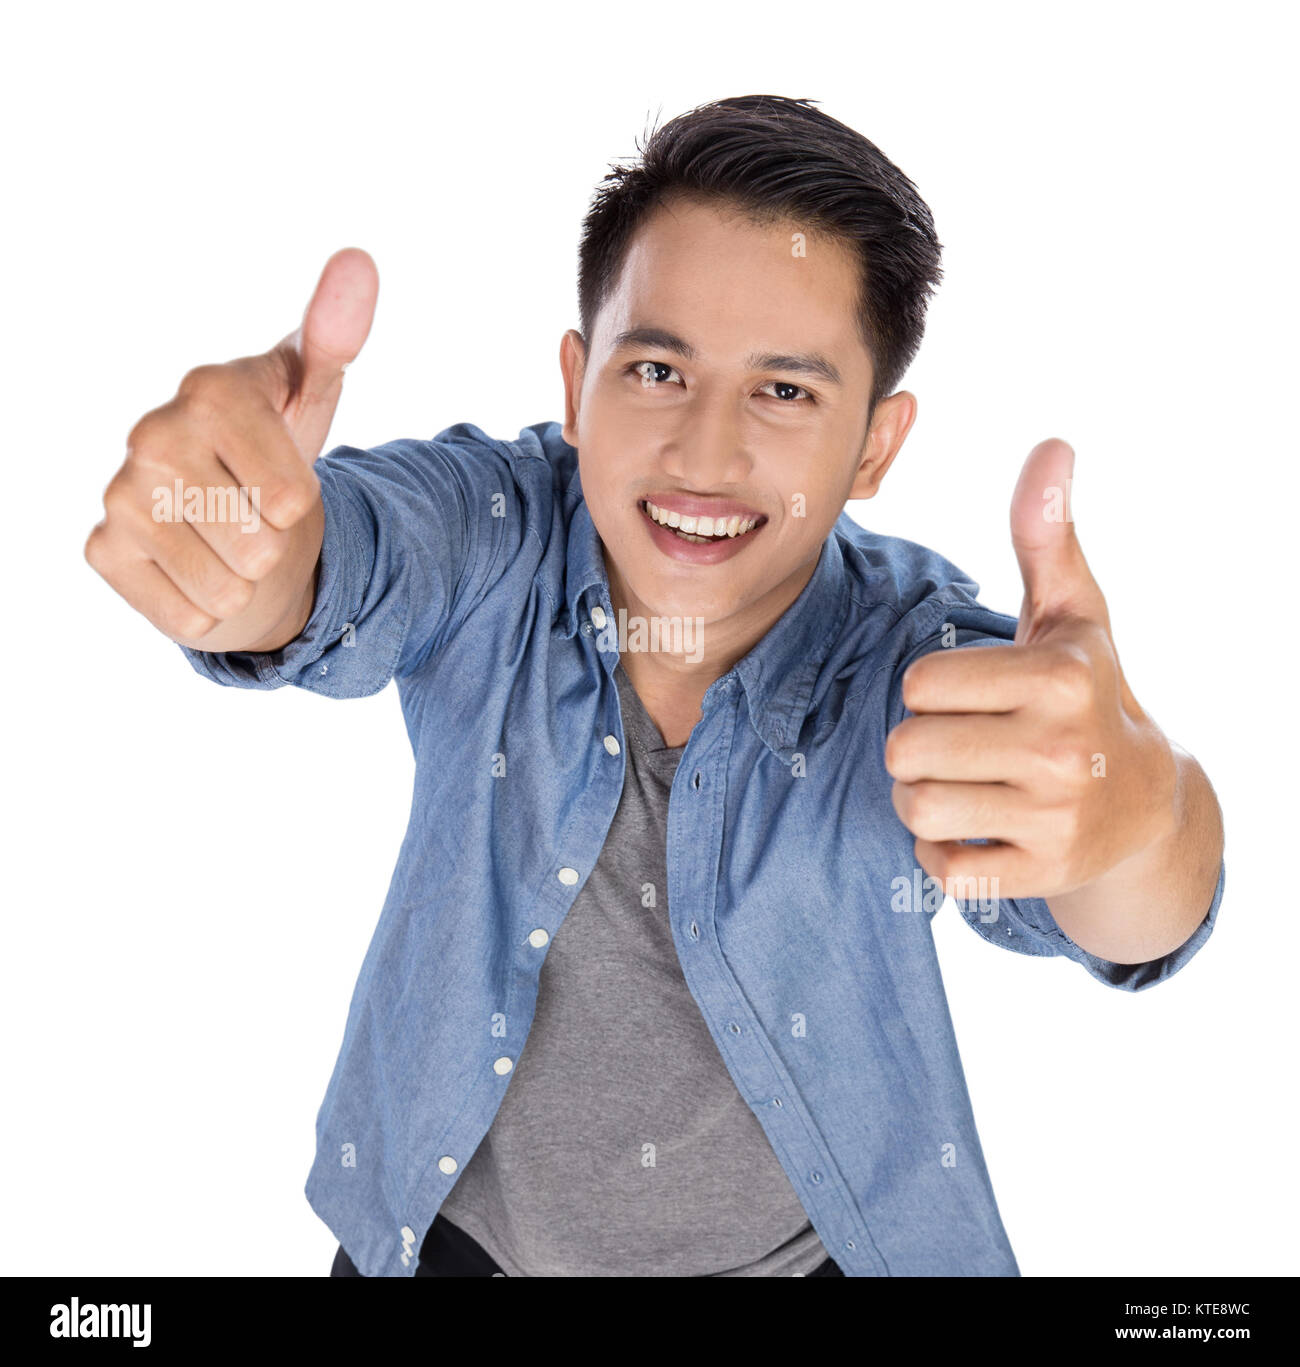 Young asian man posing on the white background, thumbs up